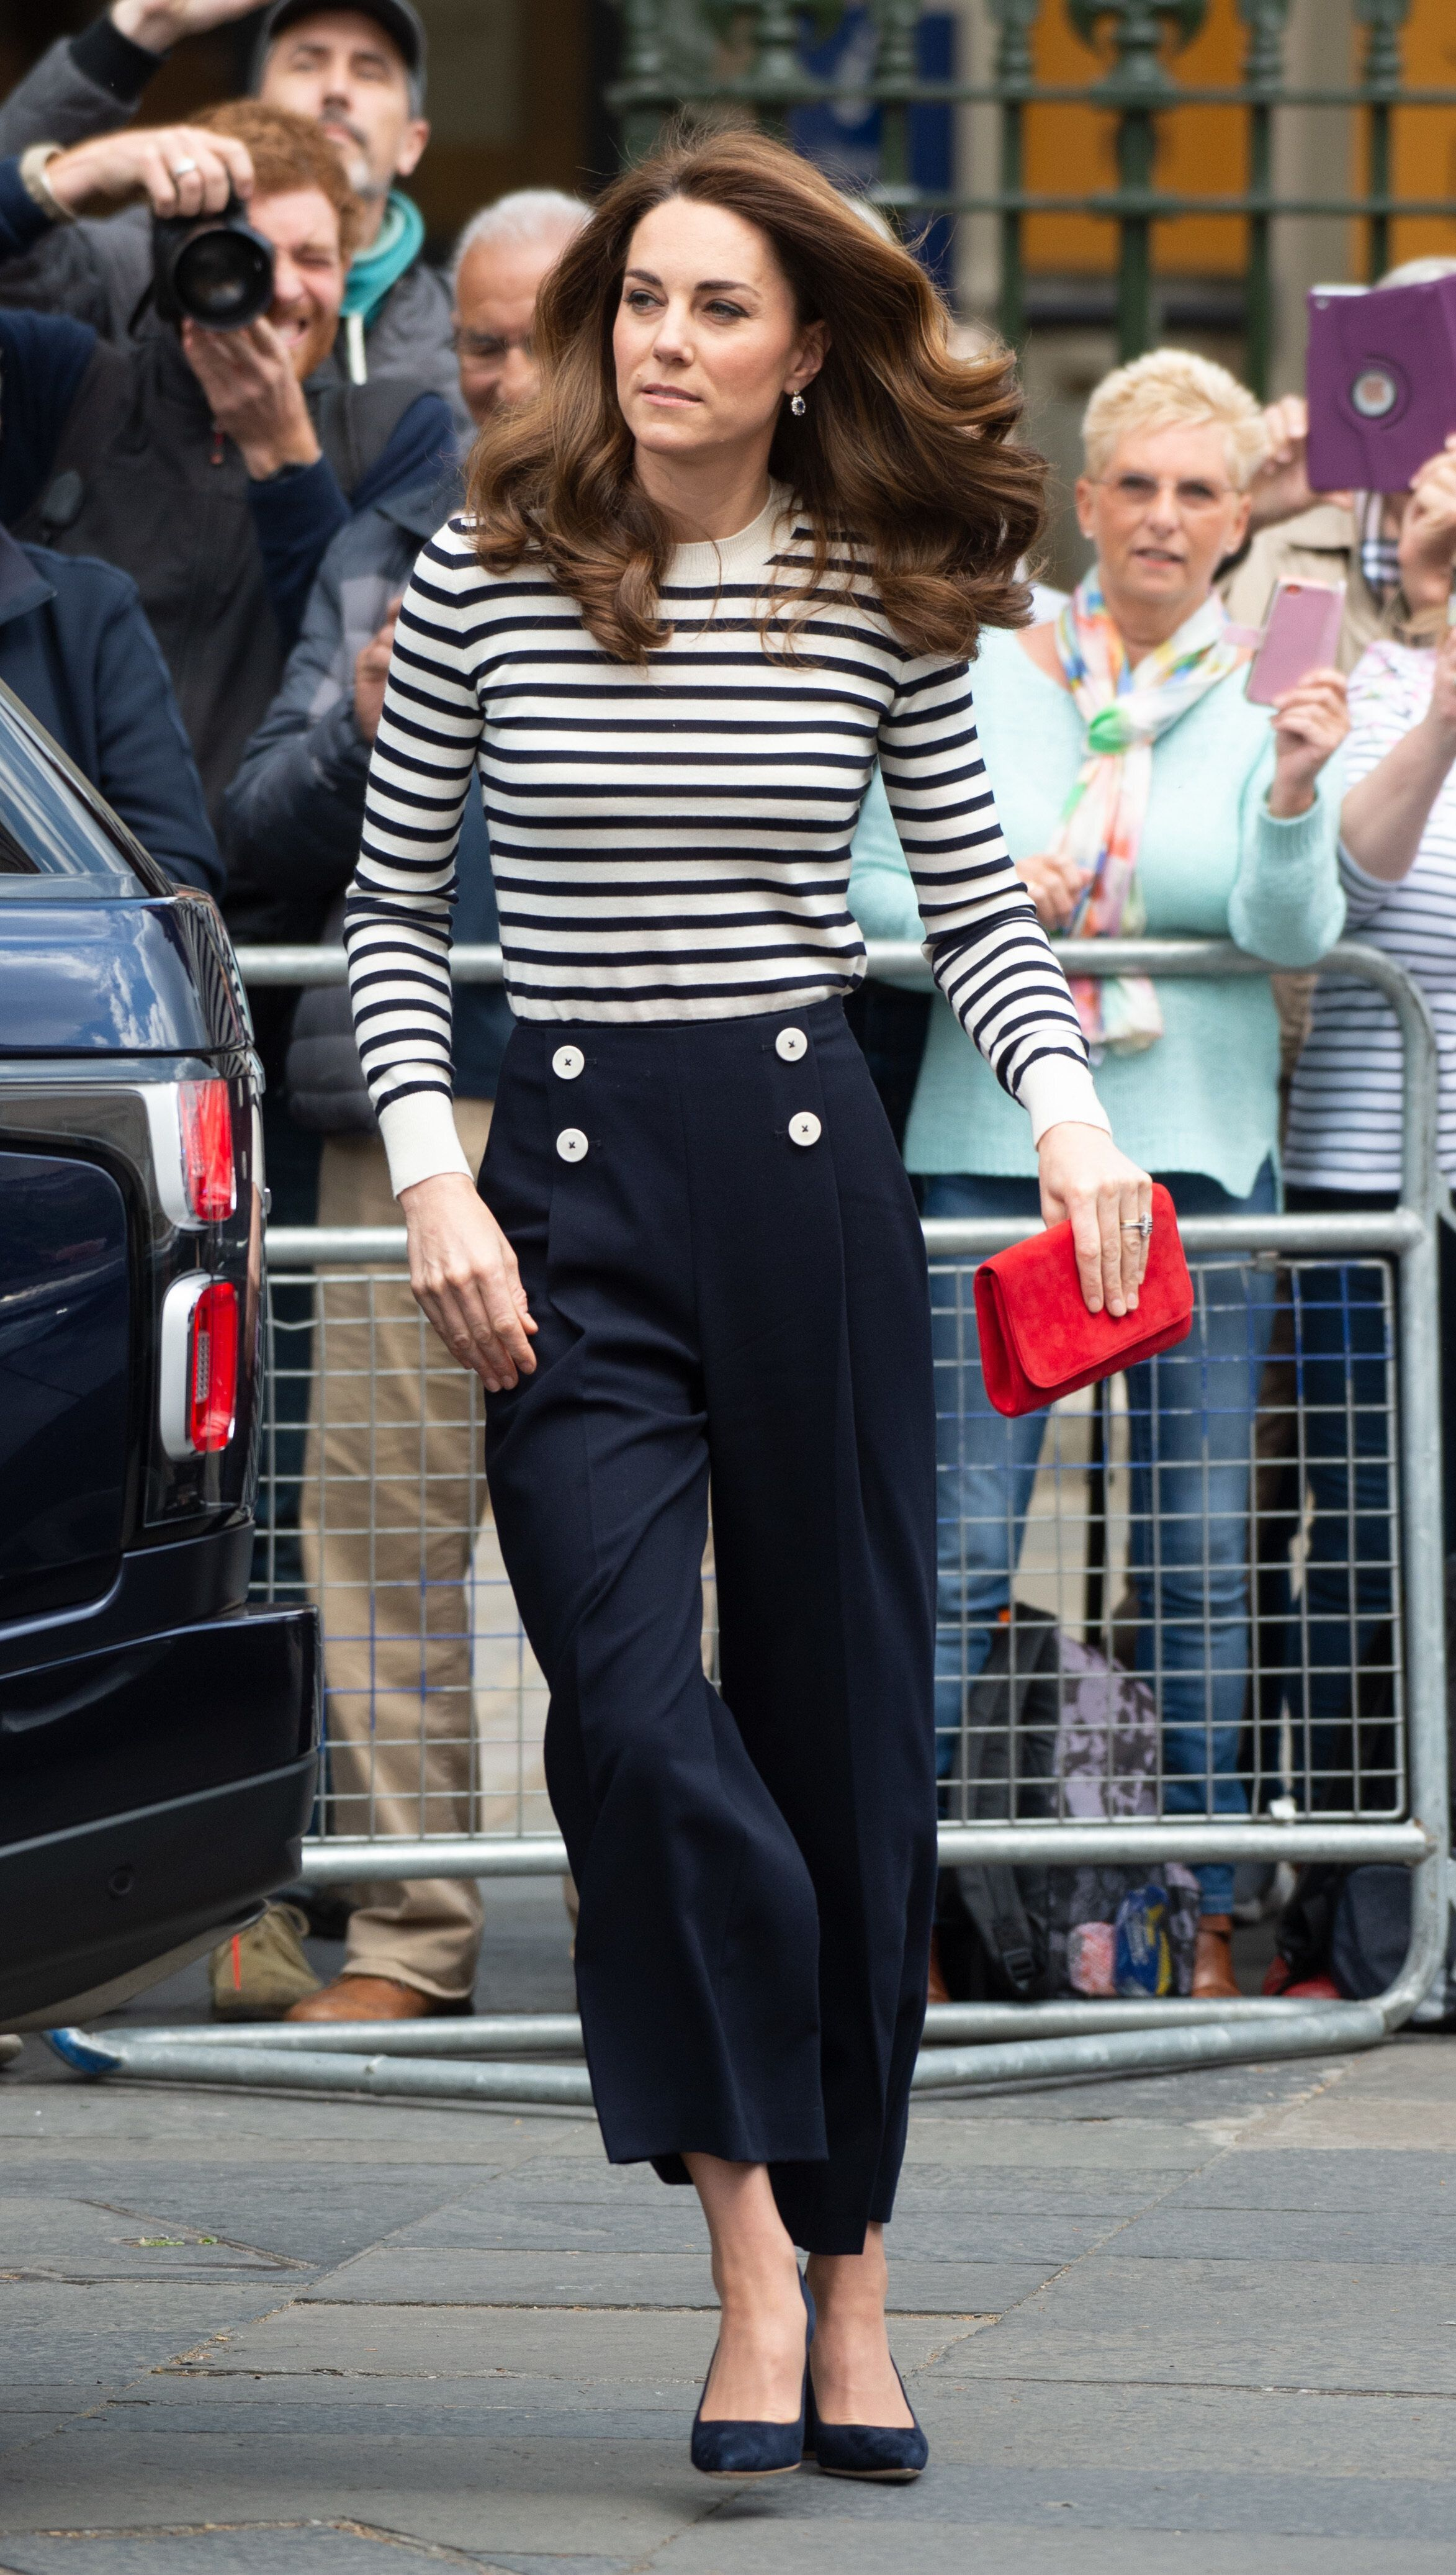 The Duchess of Cambridge wearing navy cropped L.K.Bennett trousers and a navy-and-white Breton top in London on May 7, 2019,